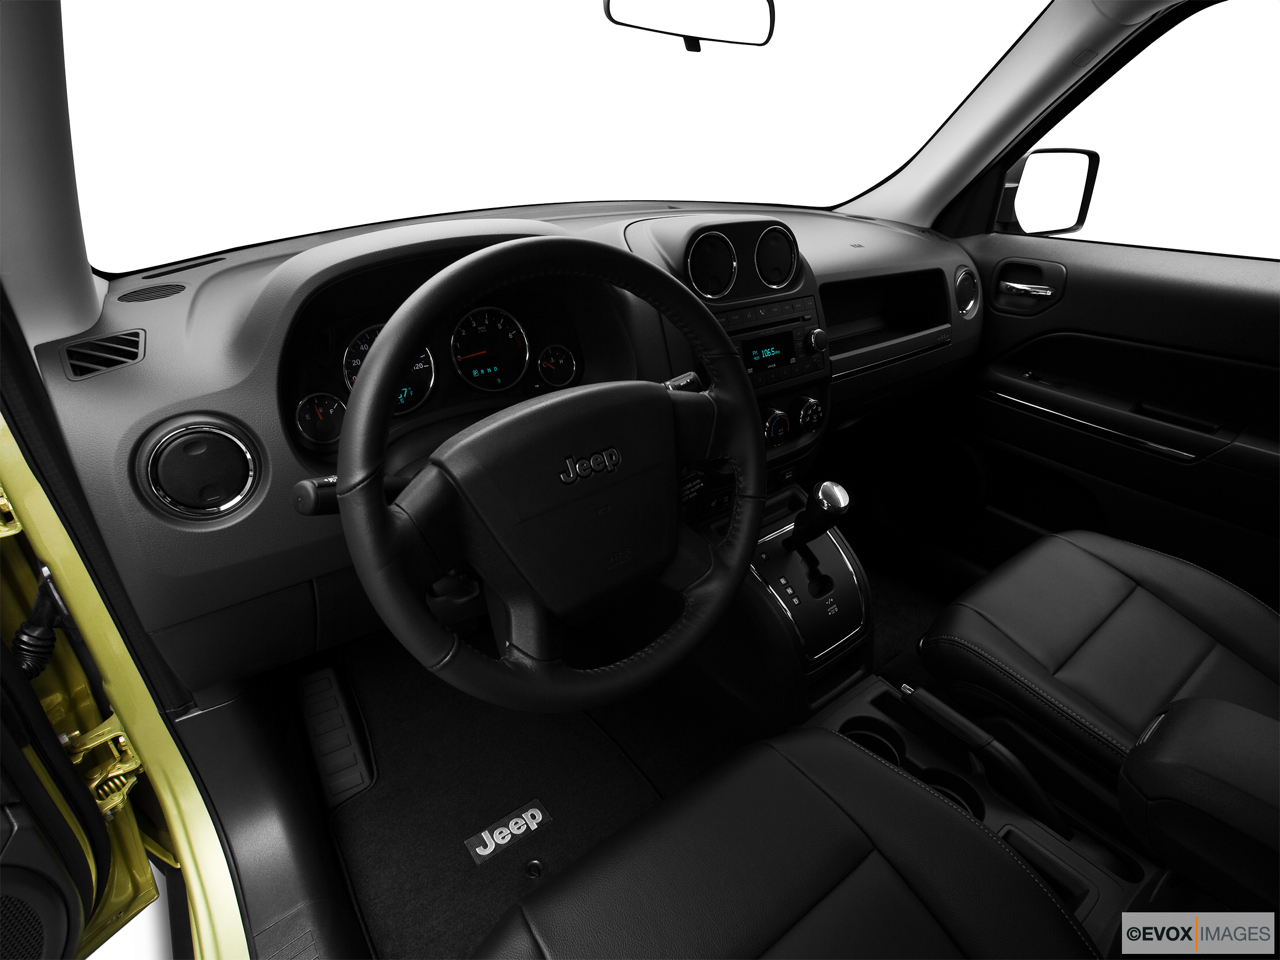 2010 Jeep Patriot Limited Interior Hero (driver's side).